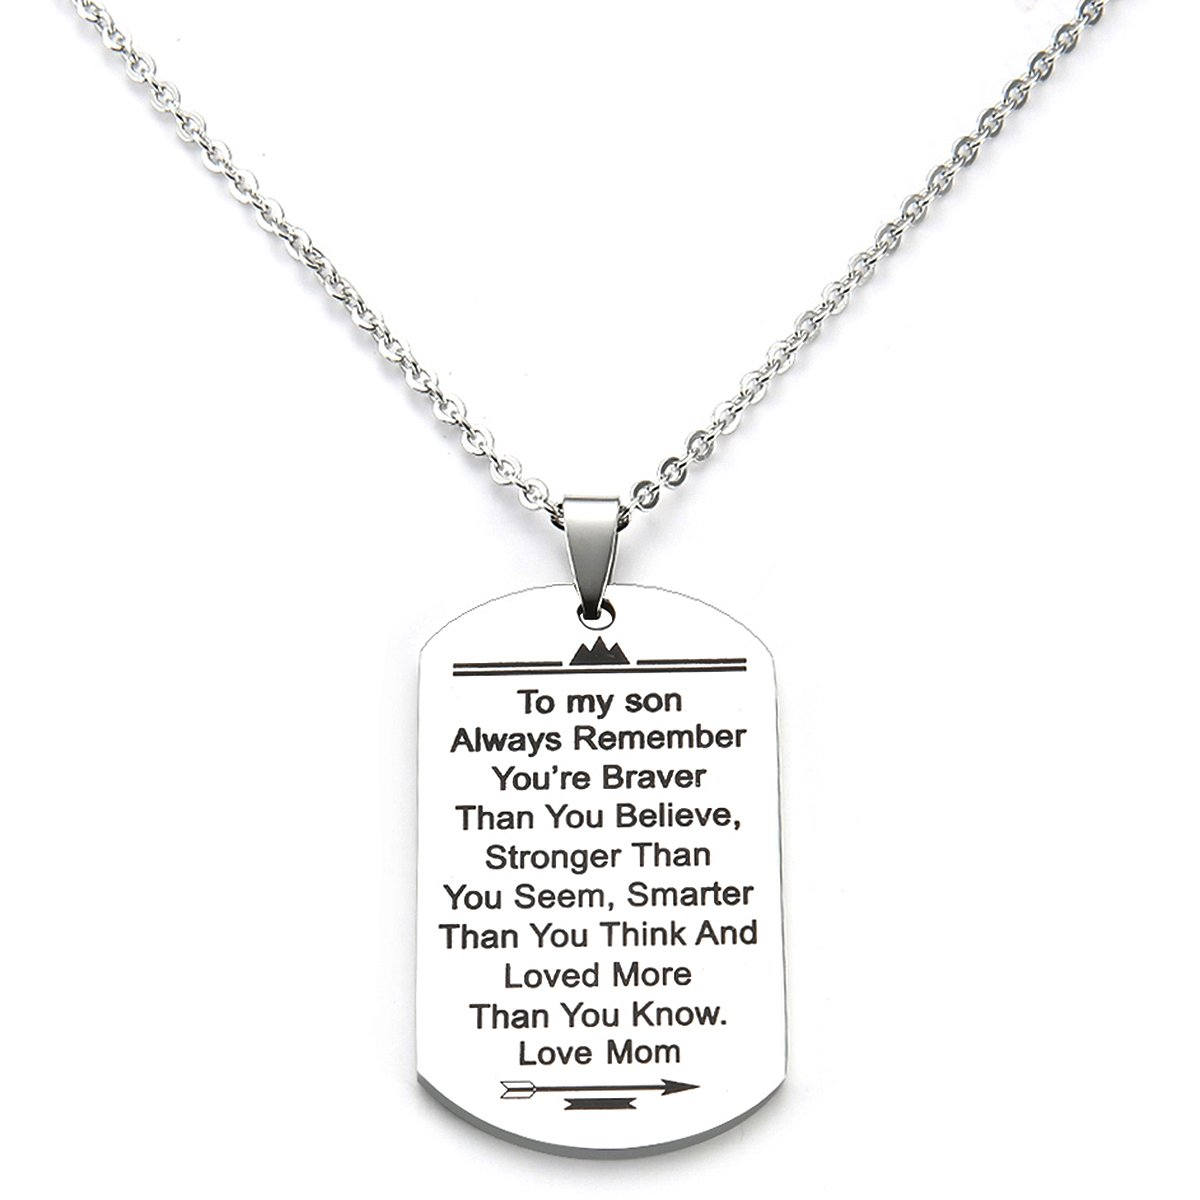 Stainless Steel Dog Tag Letters ''To my son....love mom'' Pendant Necklace,Inspirational Gifts For Son Jewelry